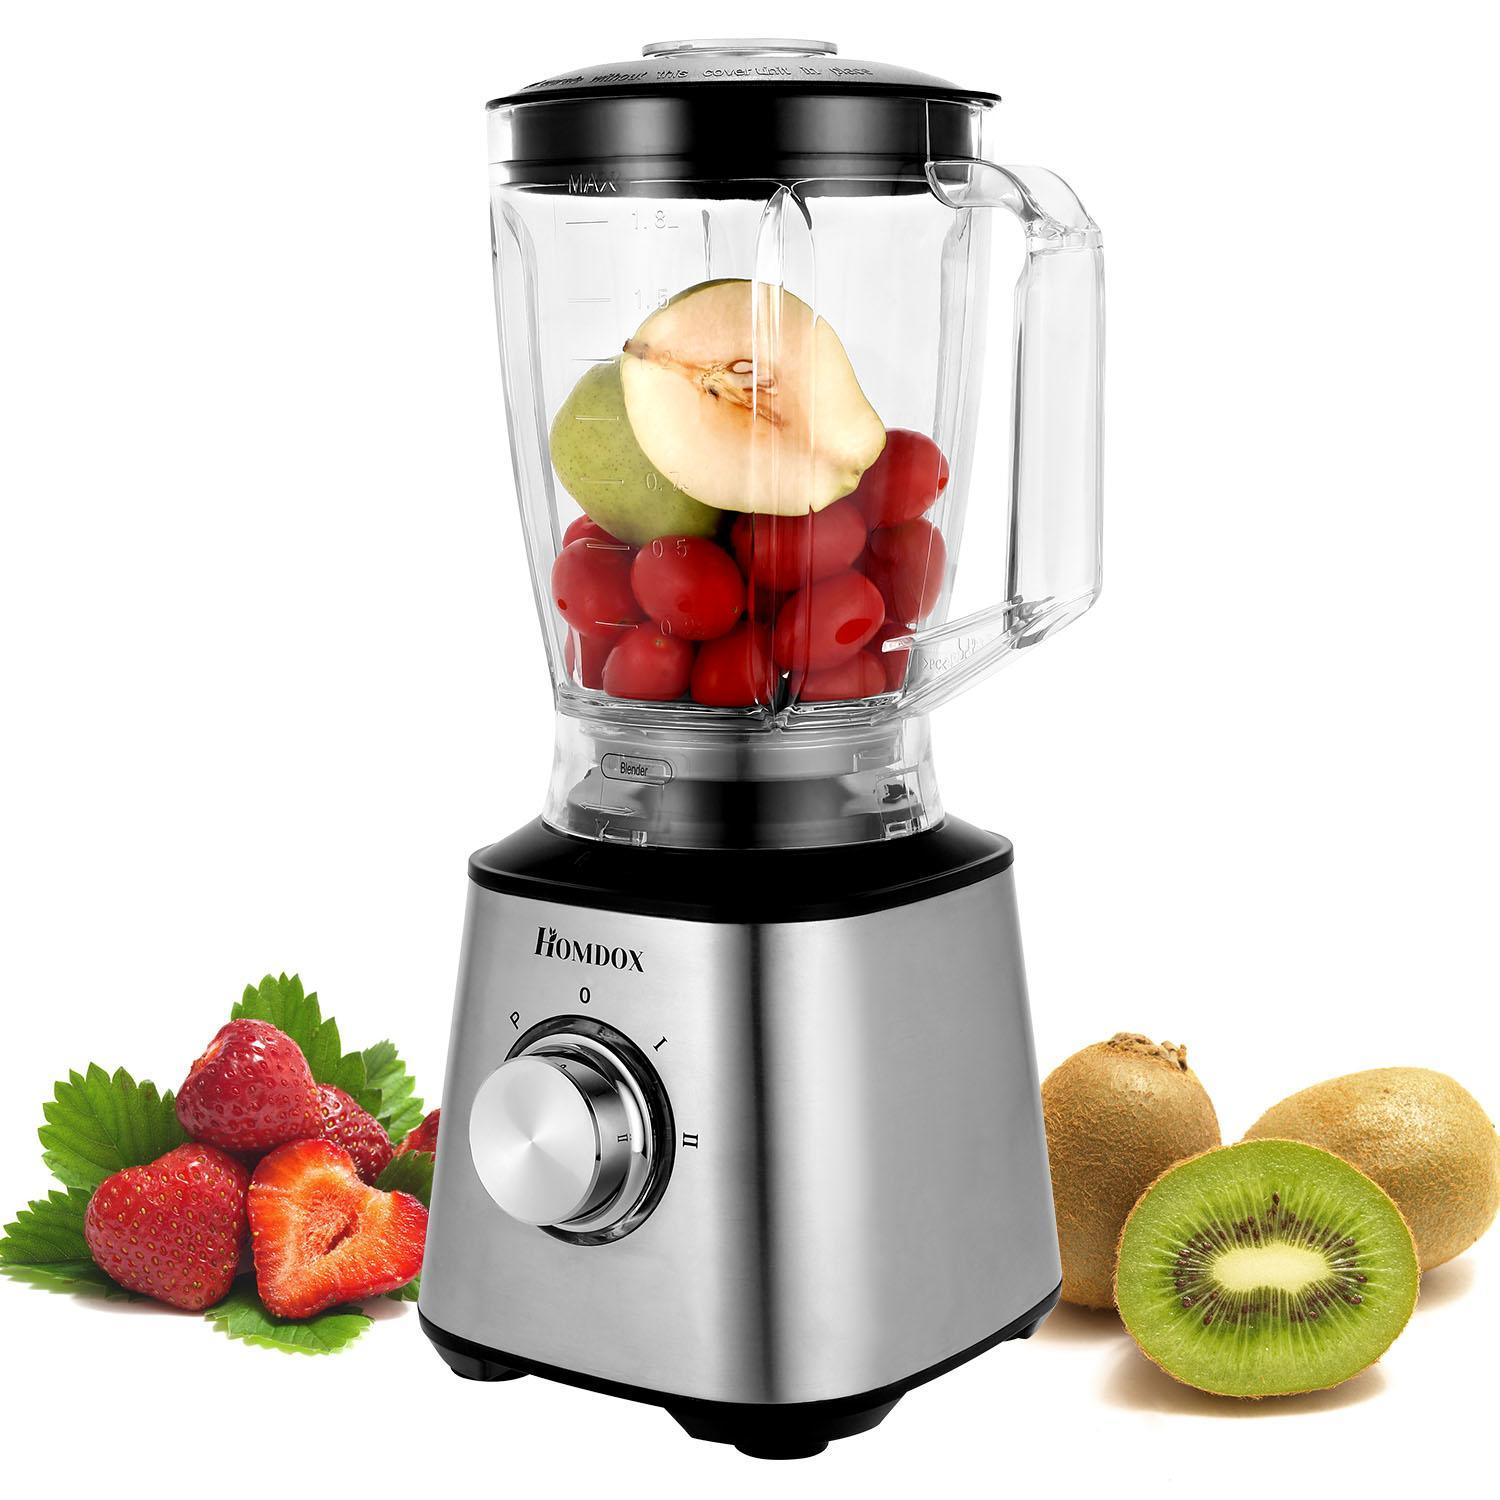 Classic Series Whirlwind Blender with Food Processor, Brushed Stainless